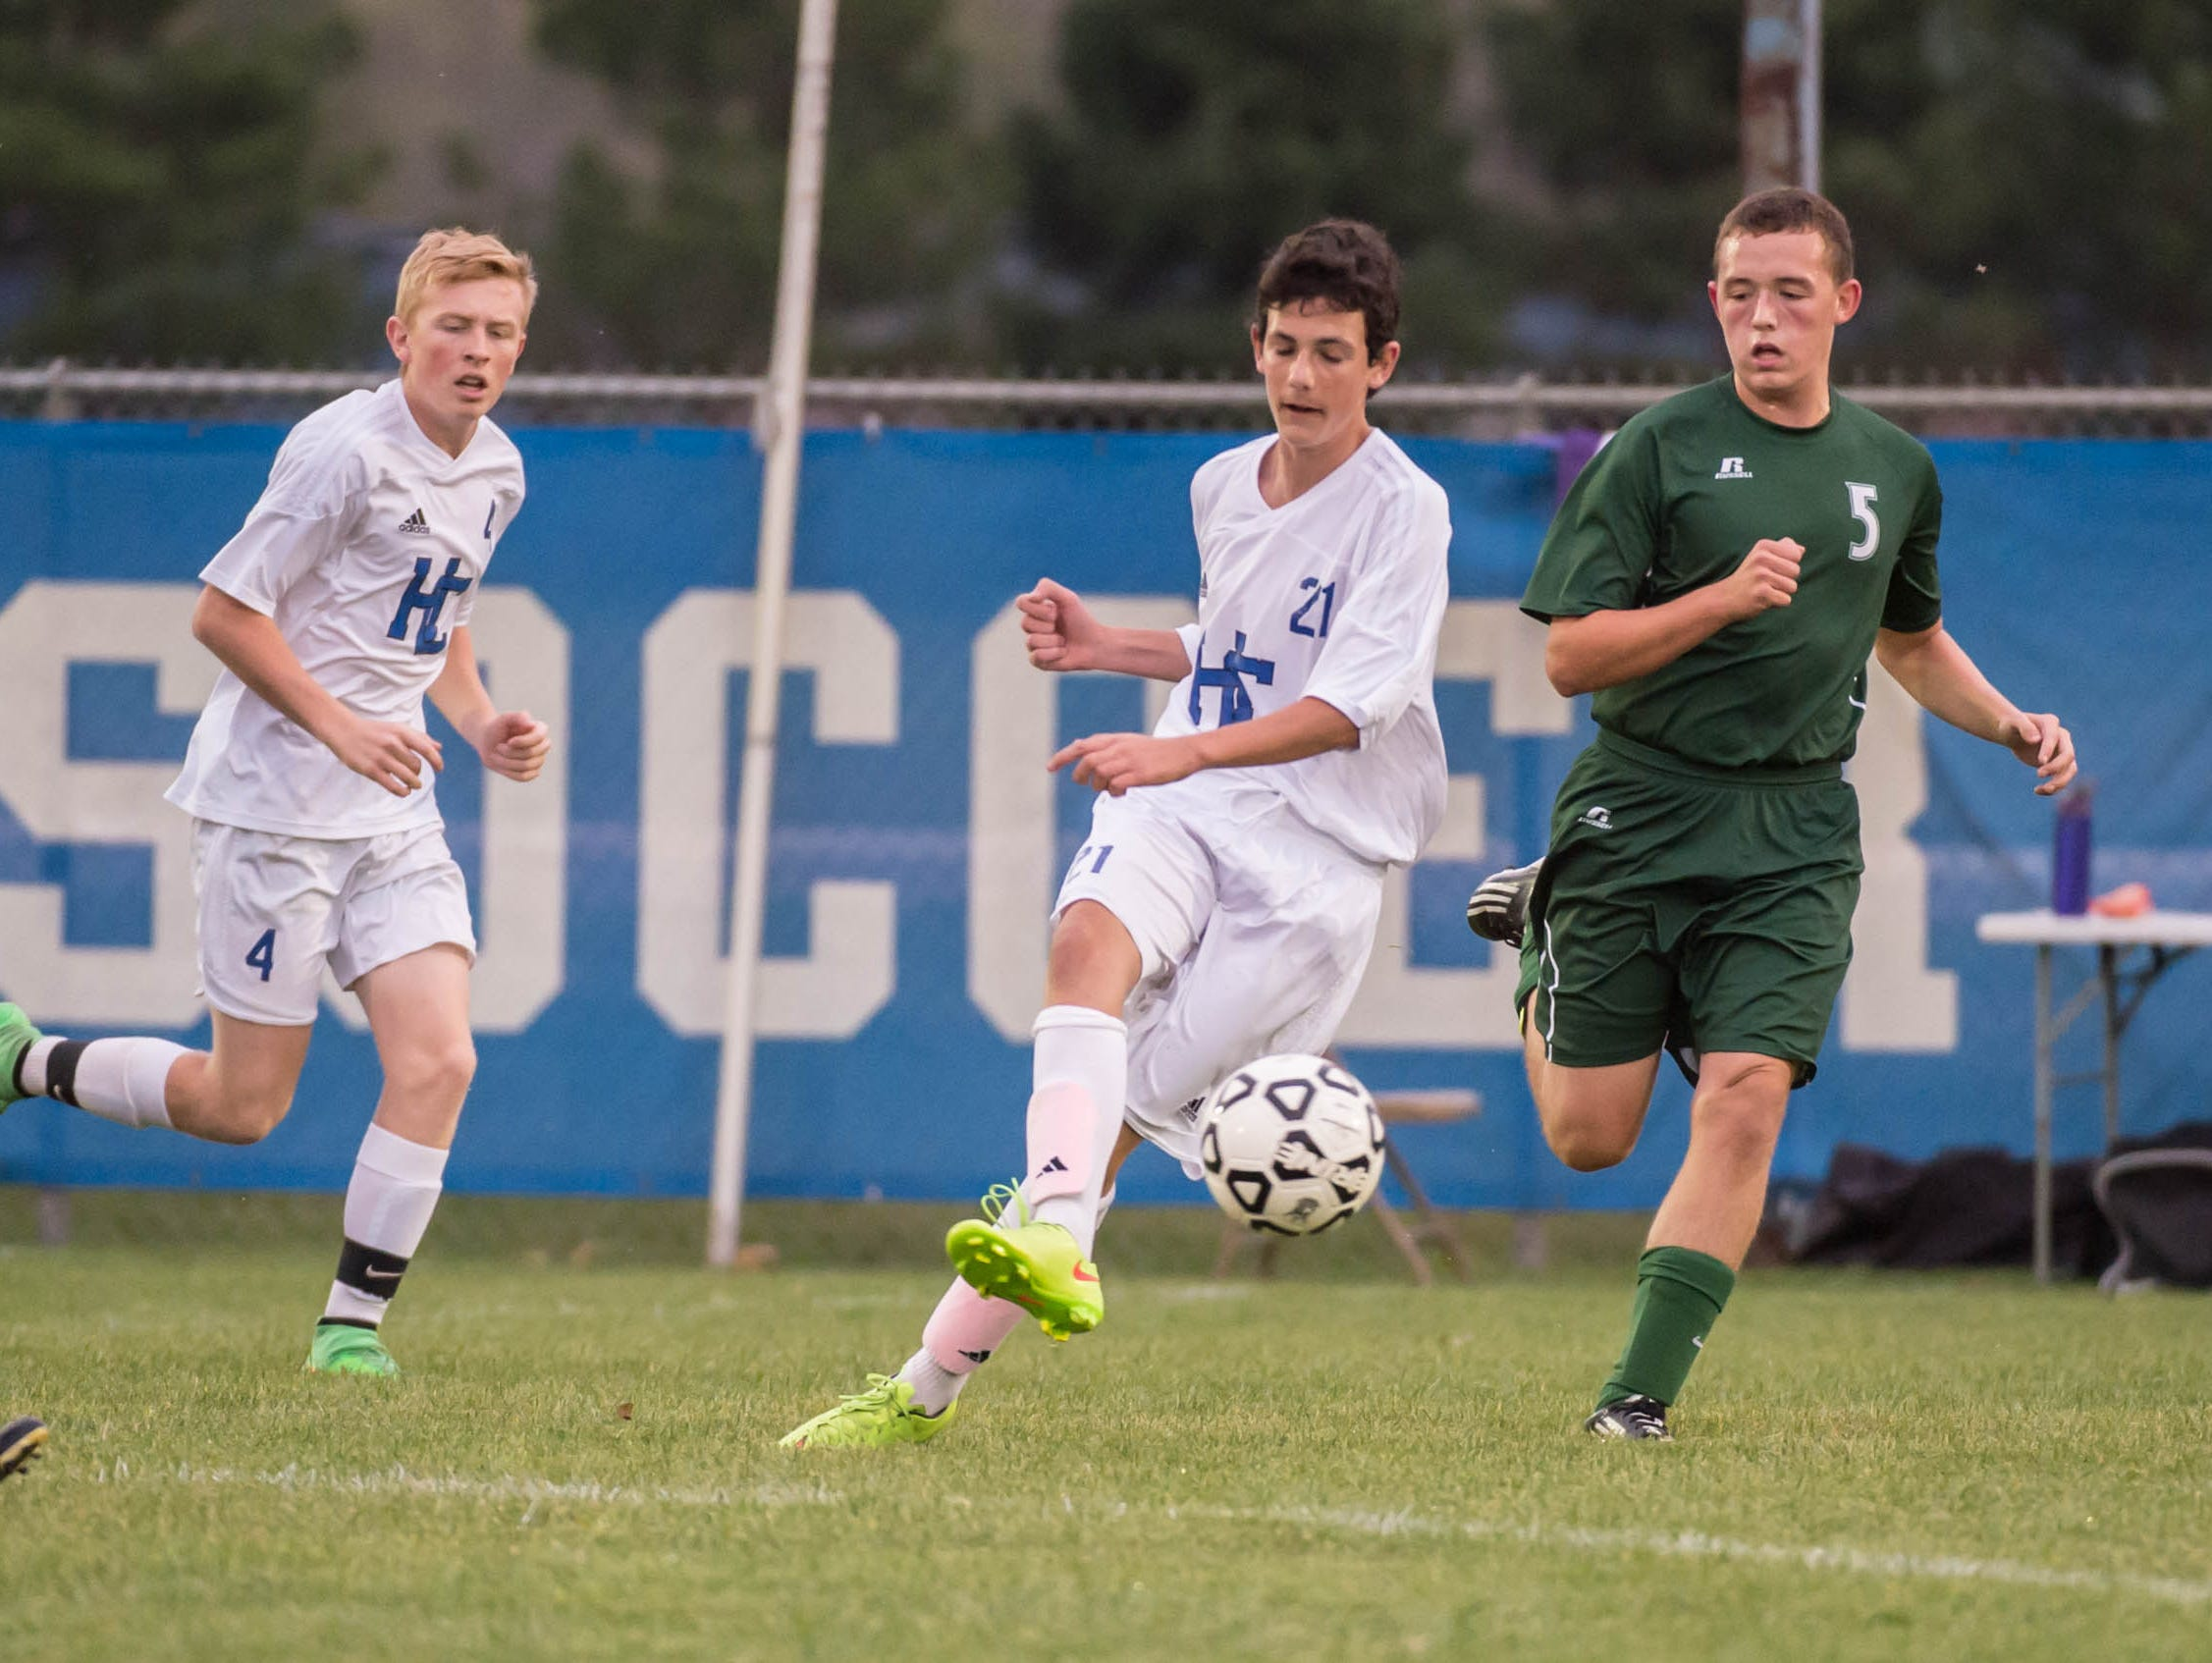 Harper Creek's Diego Subiza advances the ball (21) during district action Tuesday evening.